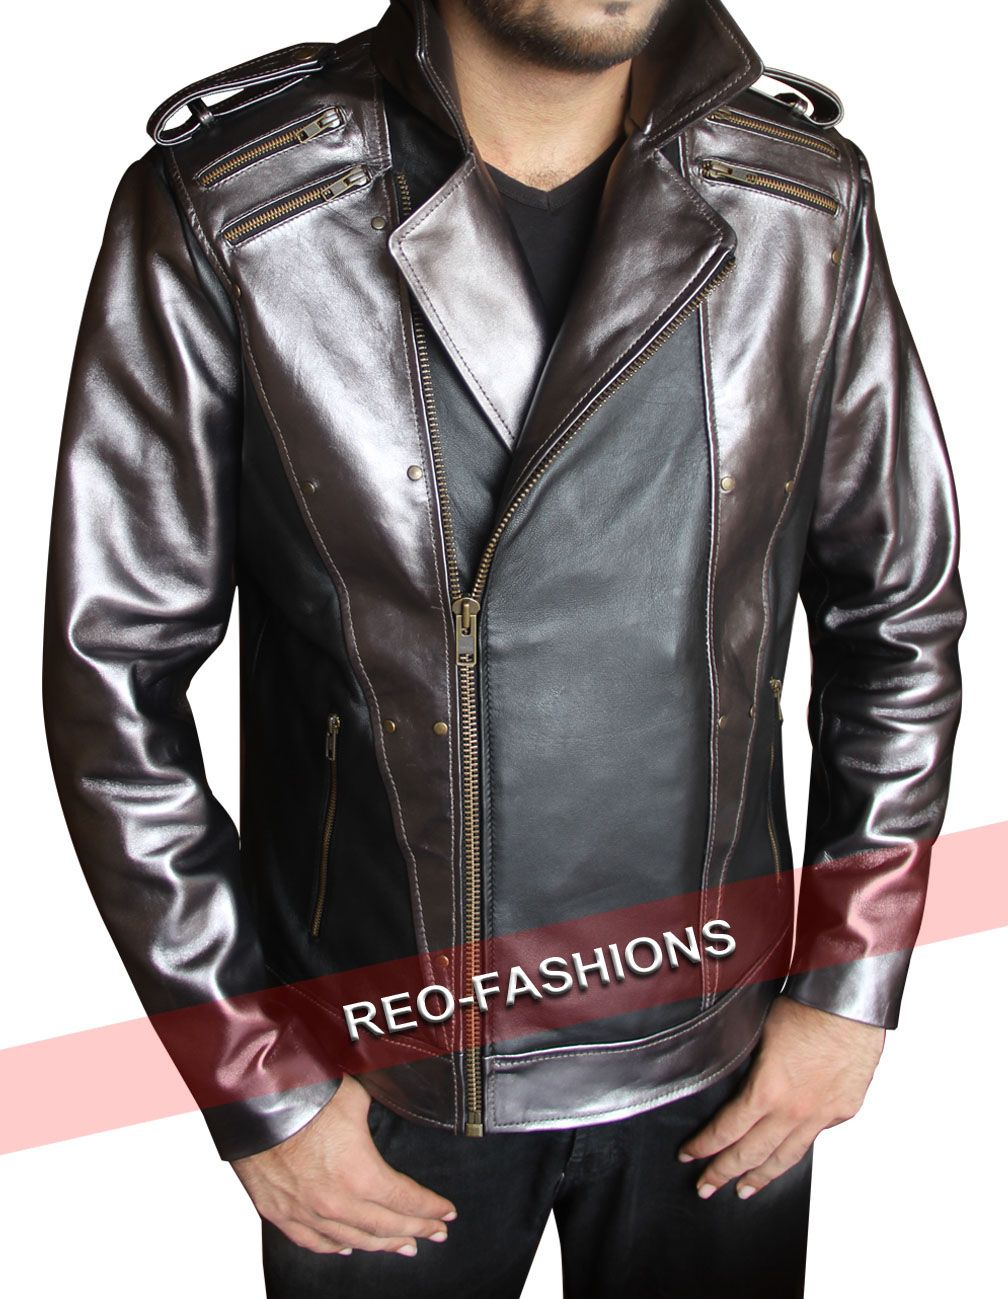 This XMen Quicksilver Leather Jacket is a choice for